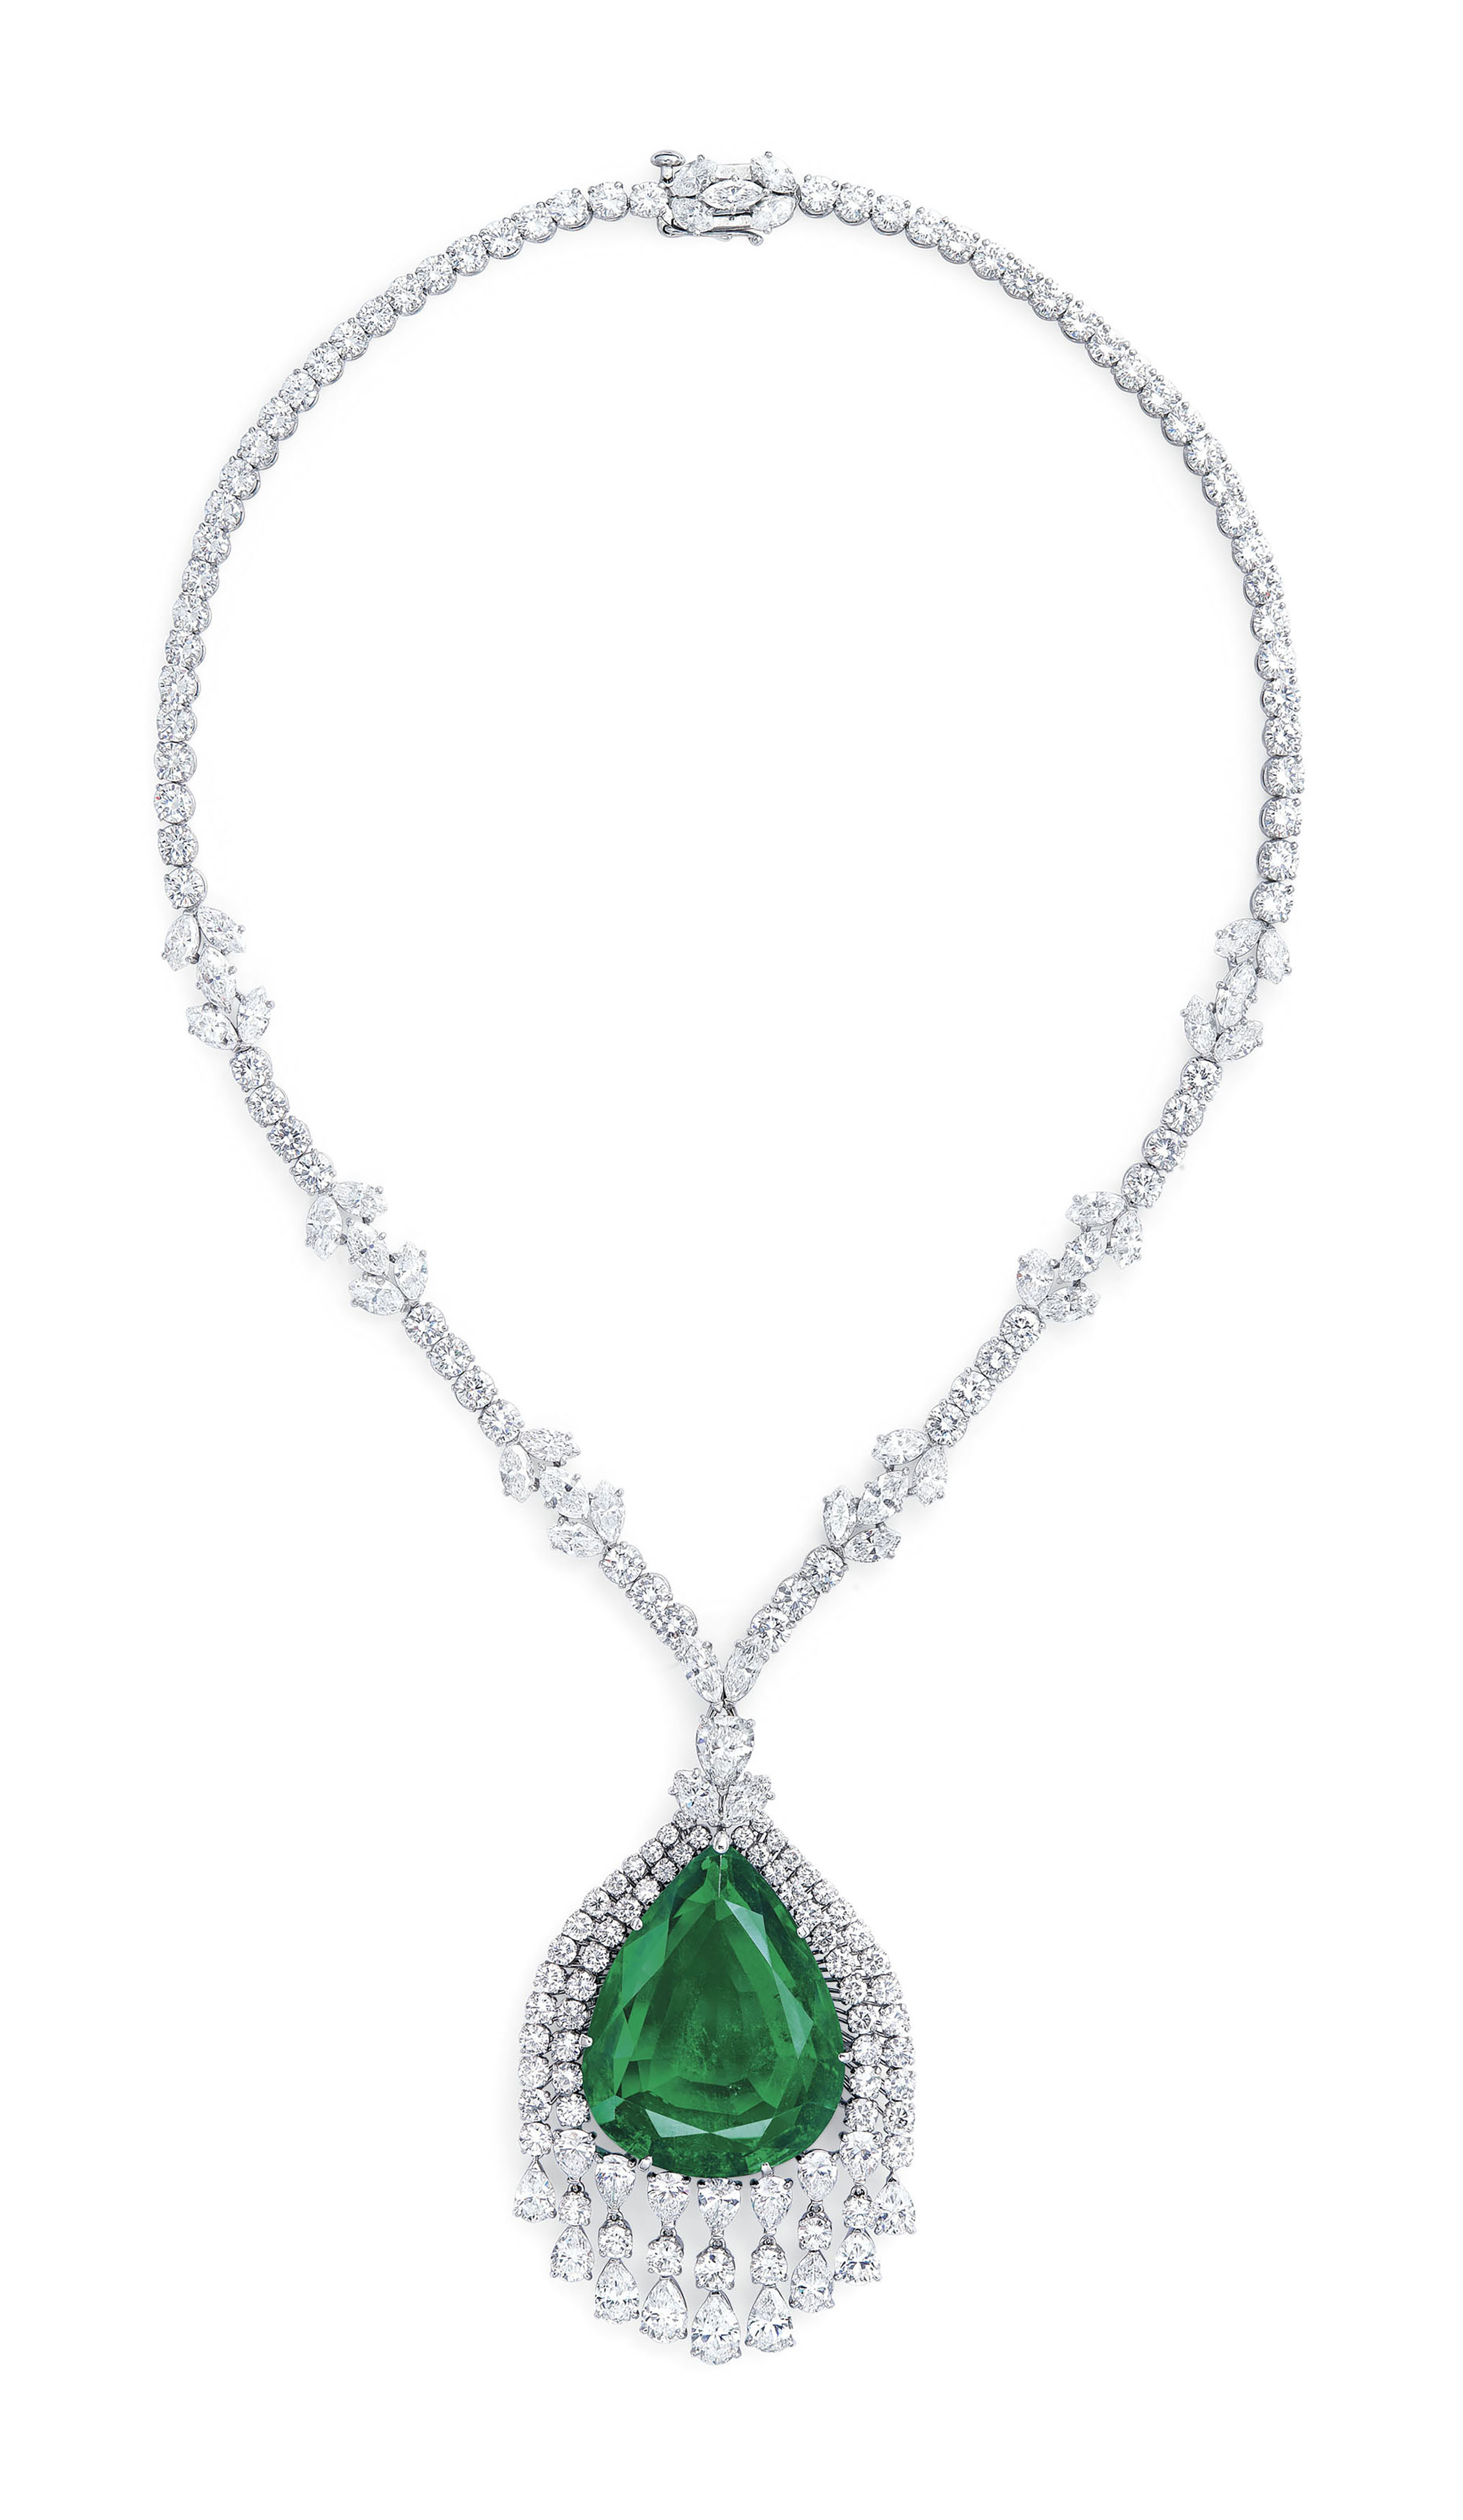 THE IMPERIAL EMERALD OF GRAND DUCHESS VLADIMIR OF RUSSIA